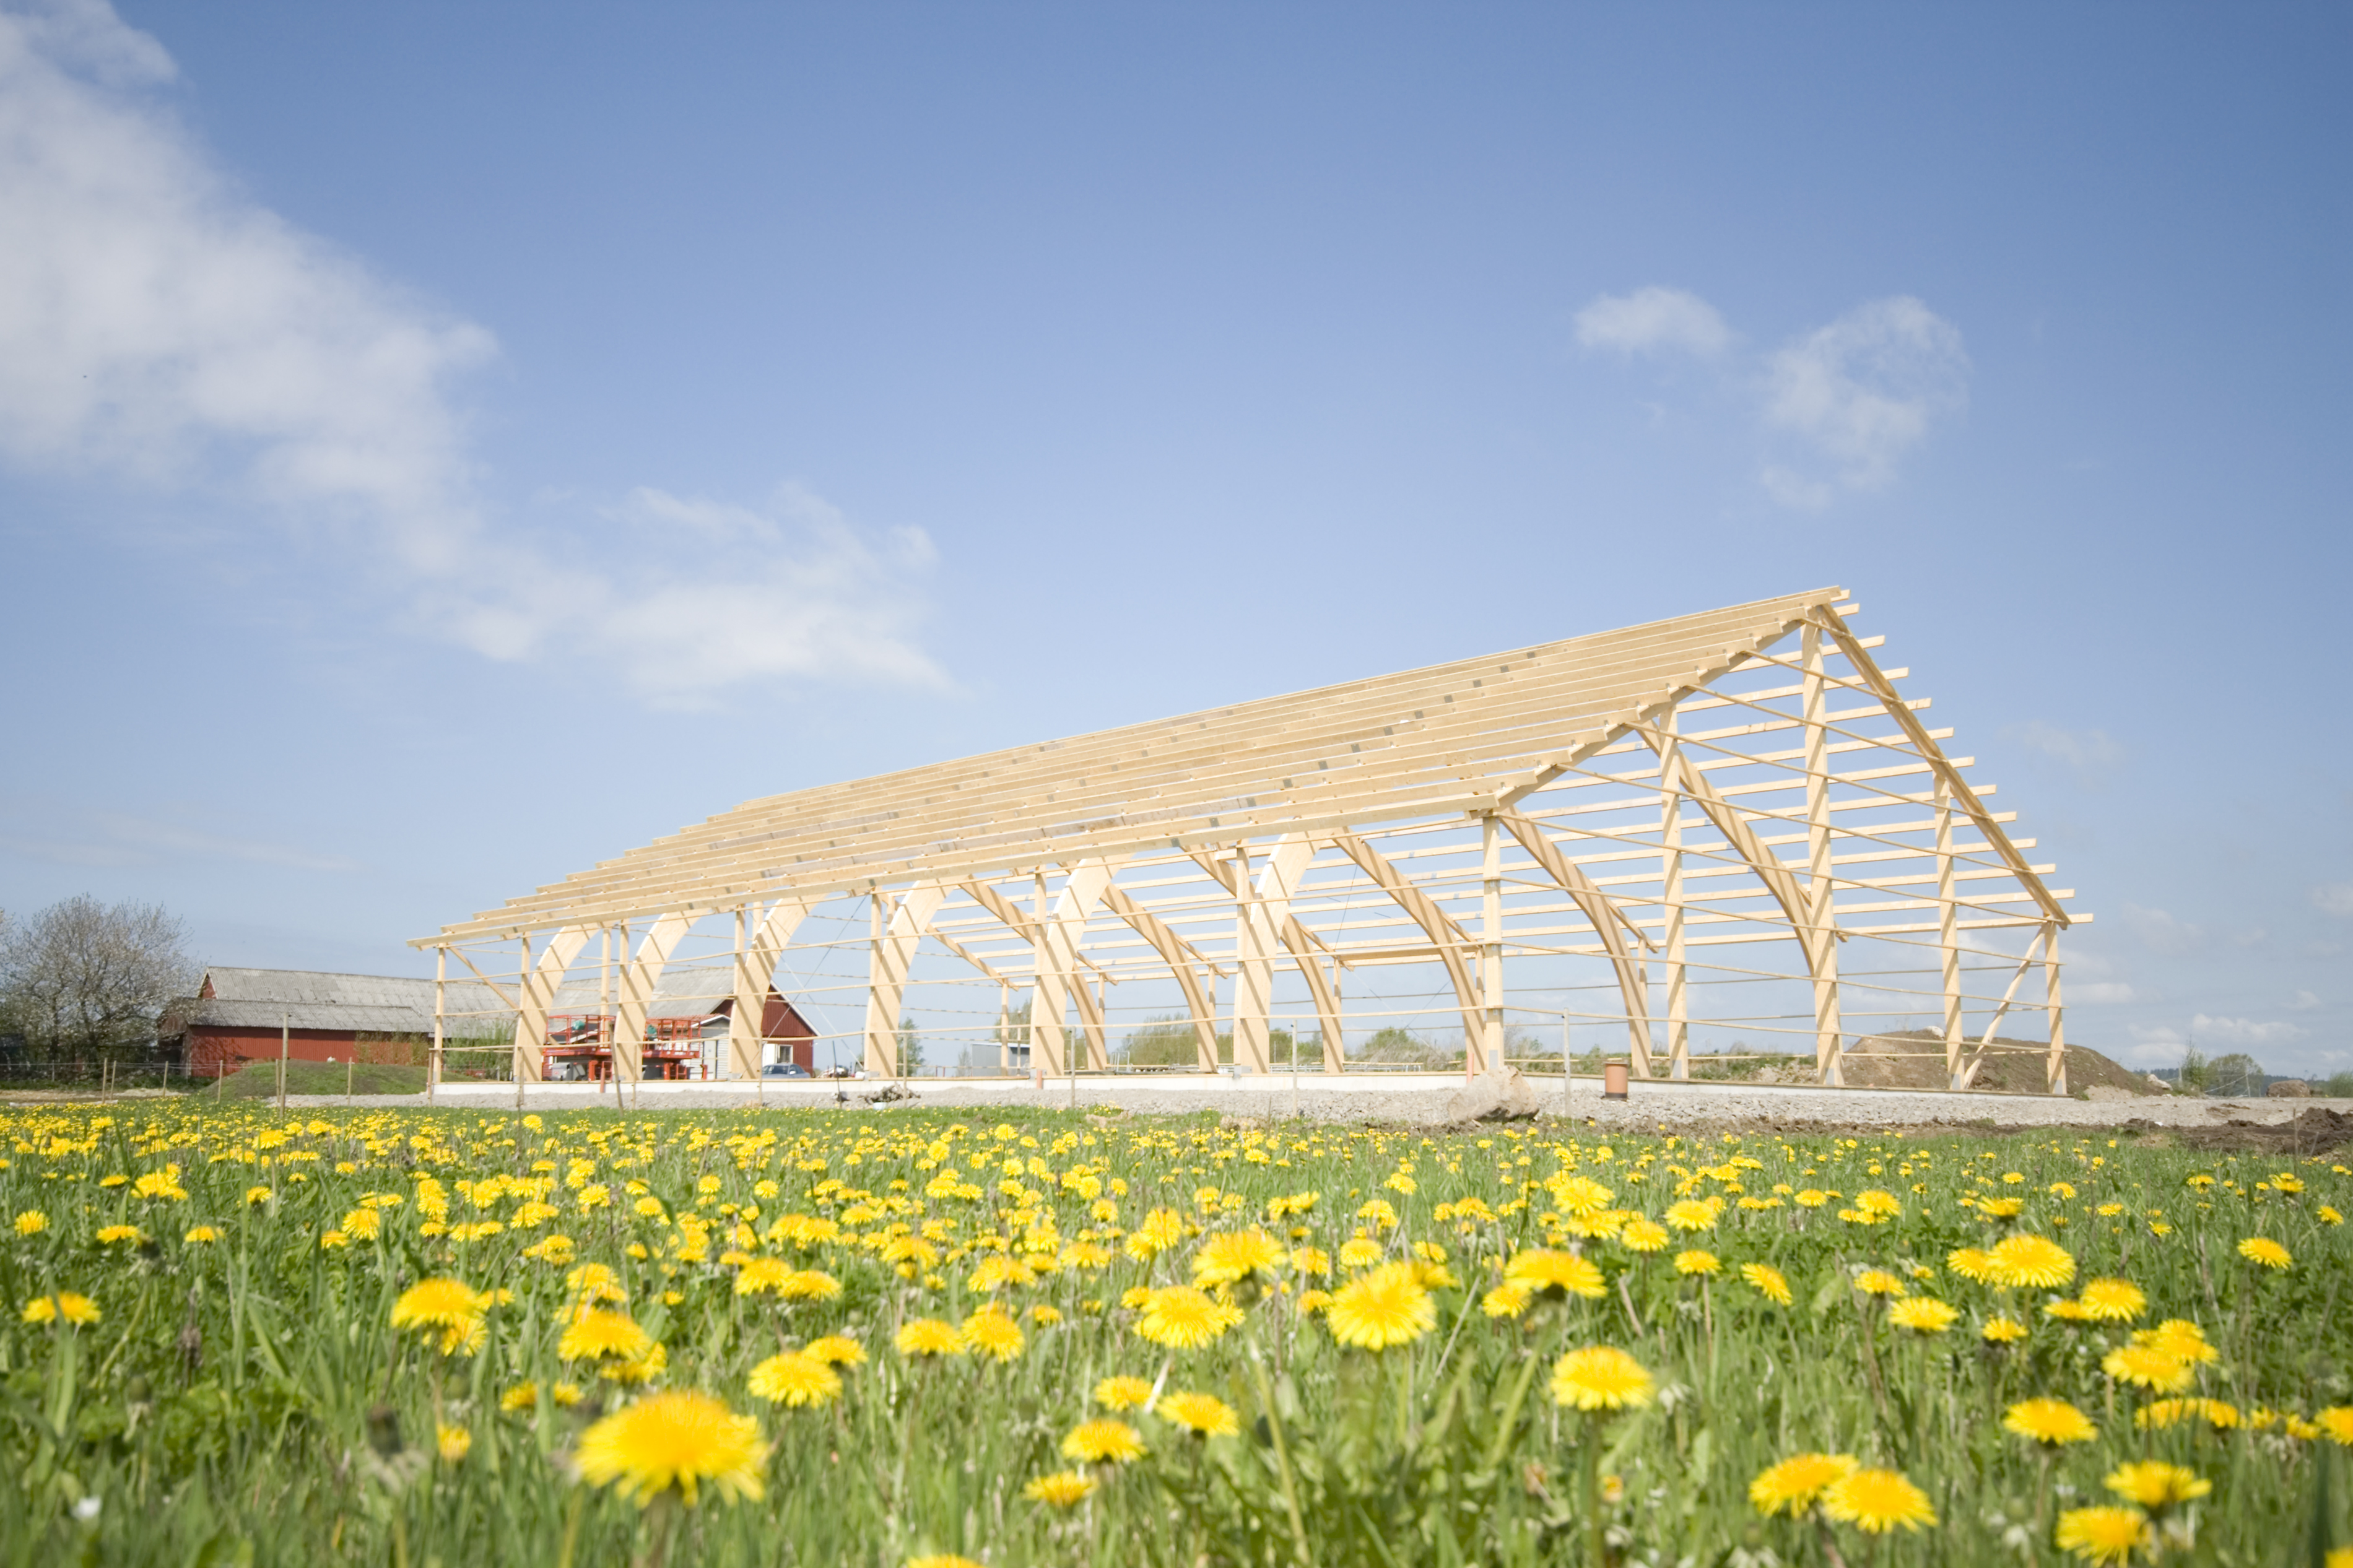 So You Want To Build A Barn? Read This Planning Guide First